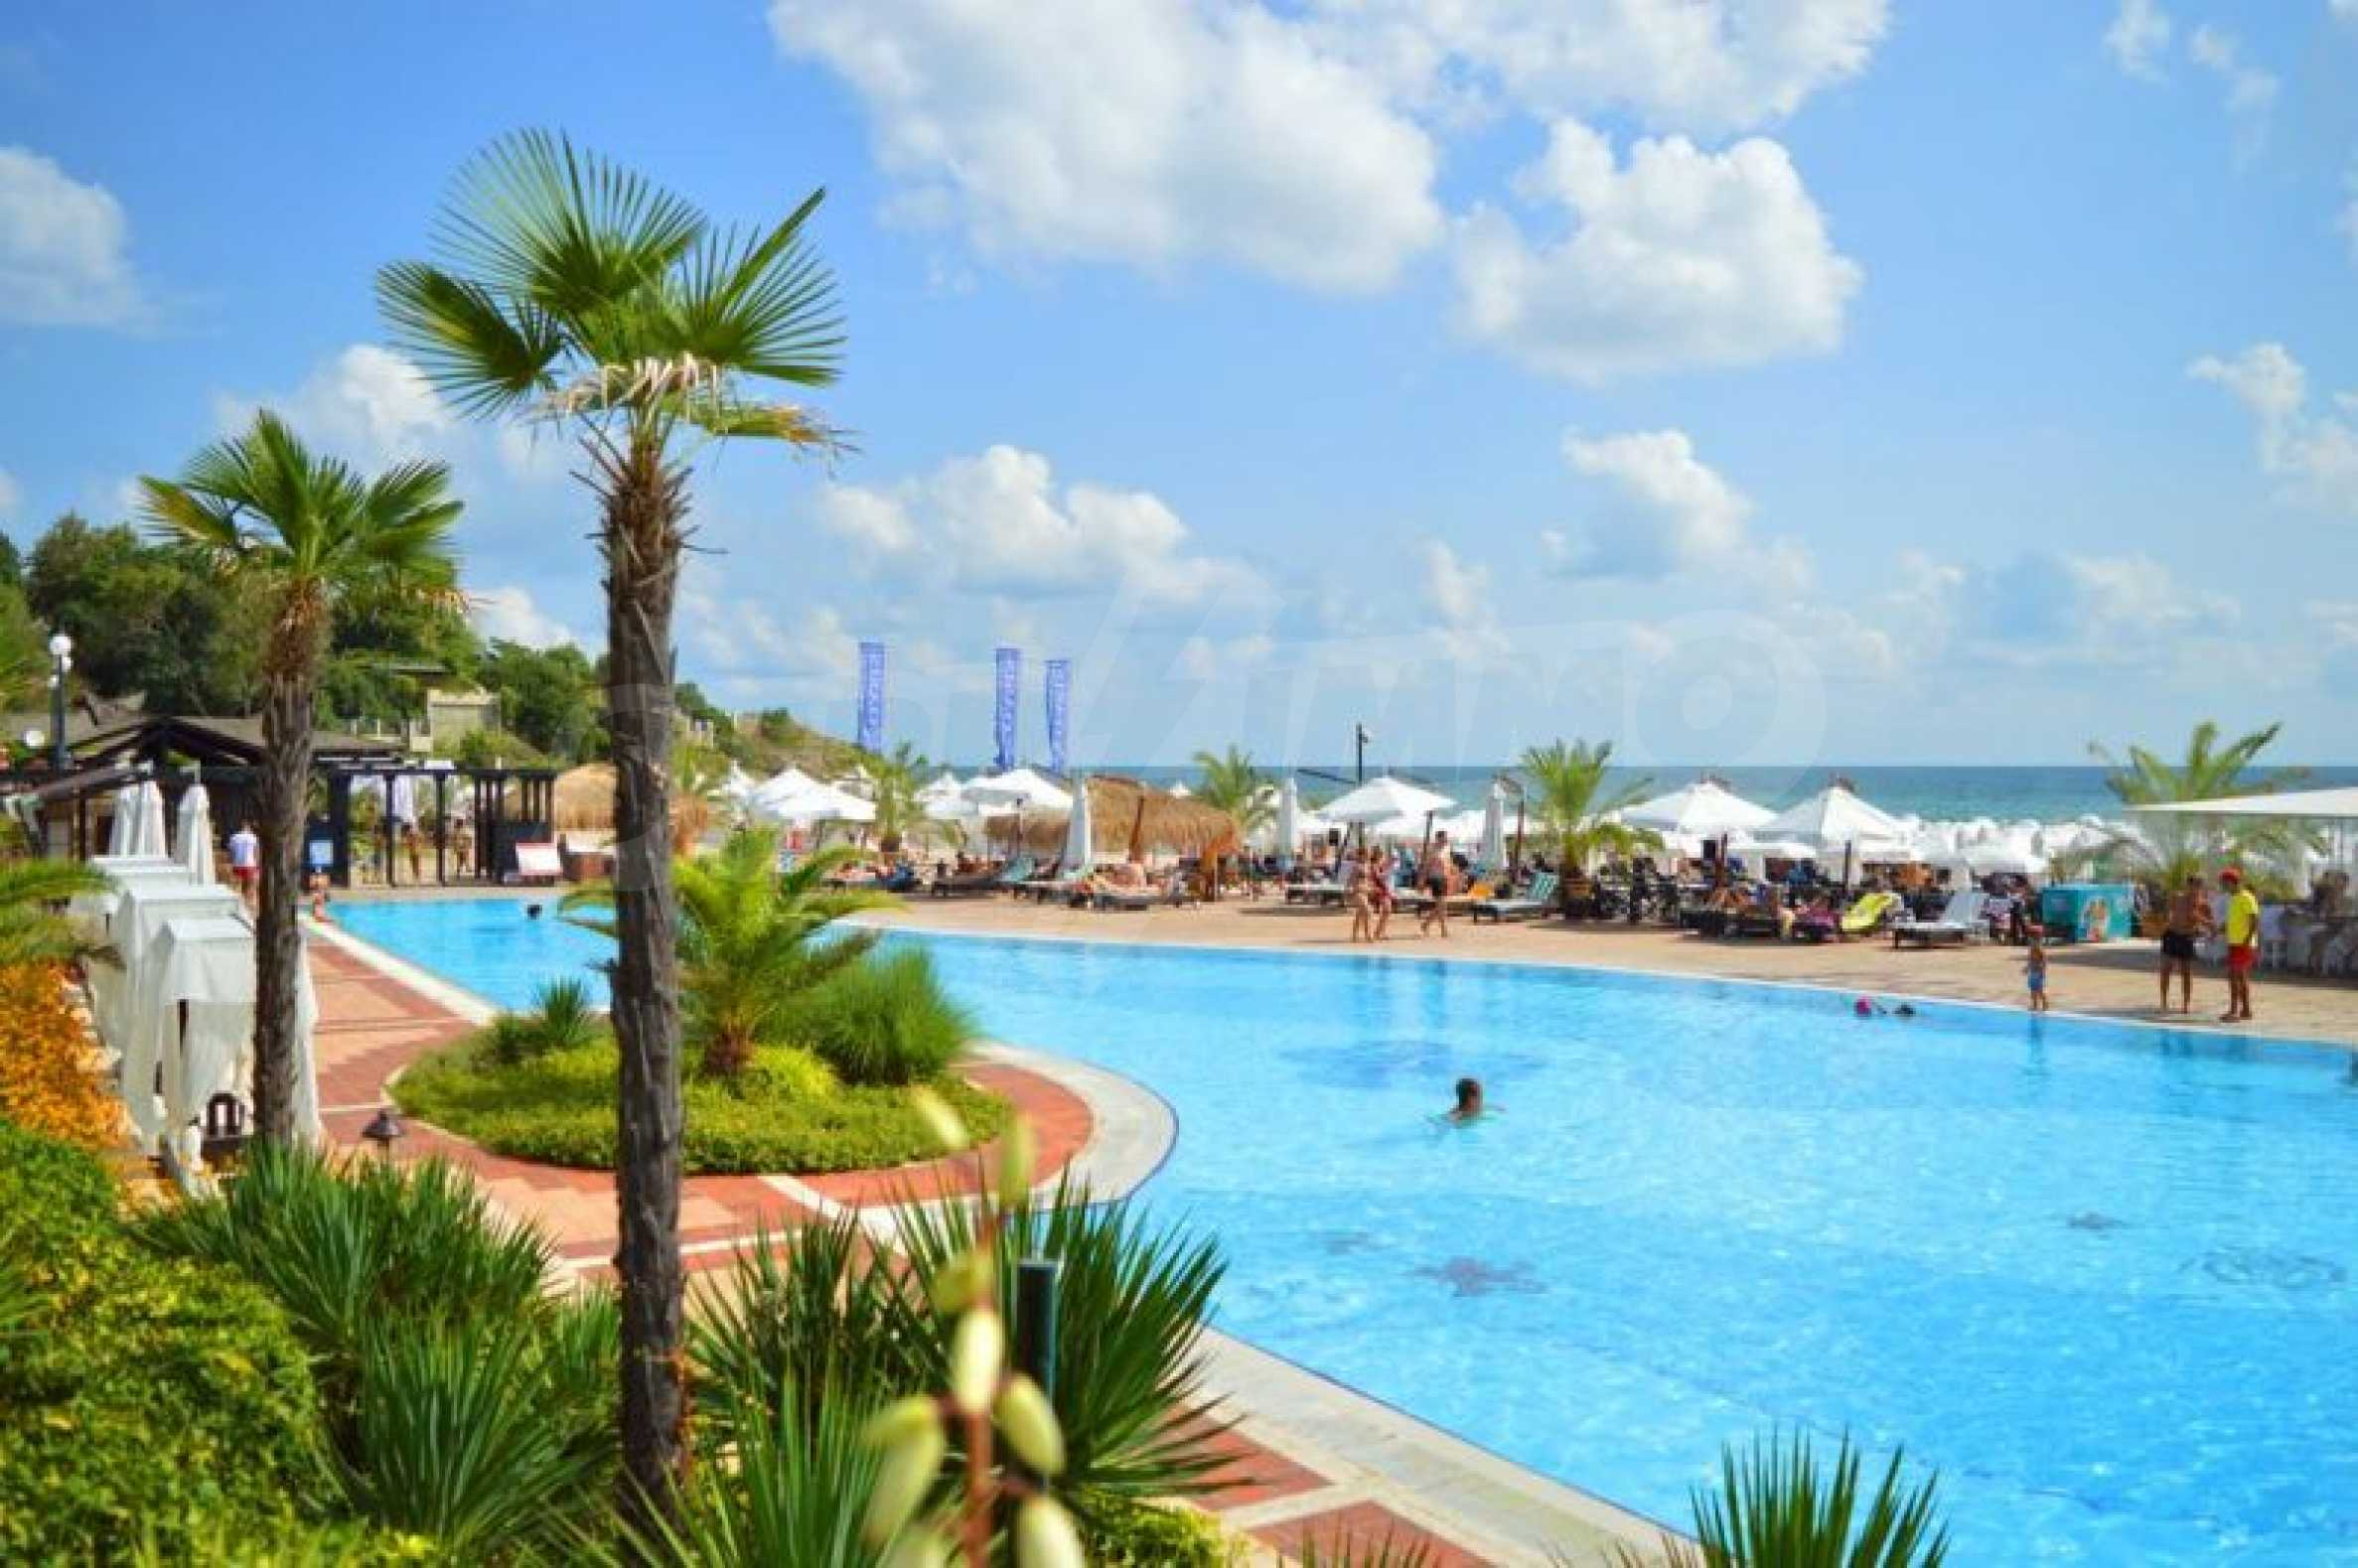 Studio for sale in an elite complex near the oasis beach 3